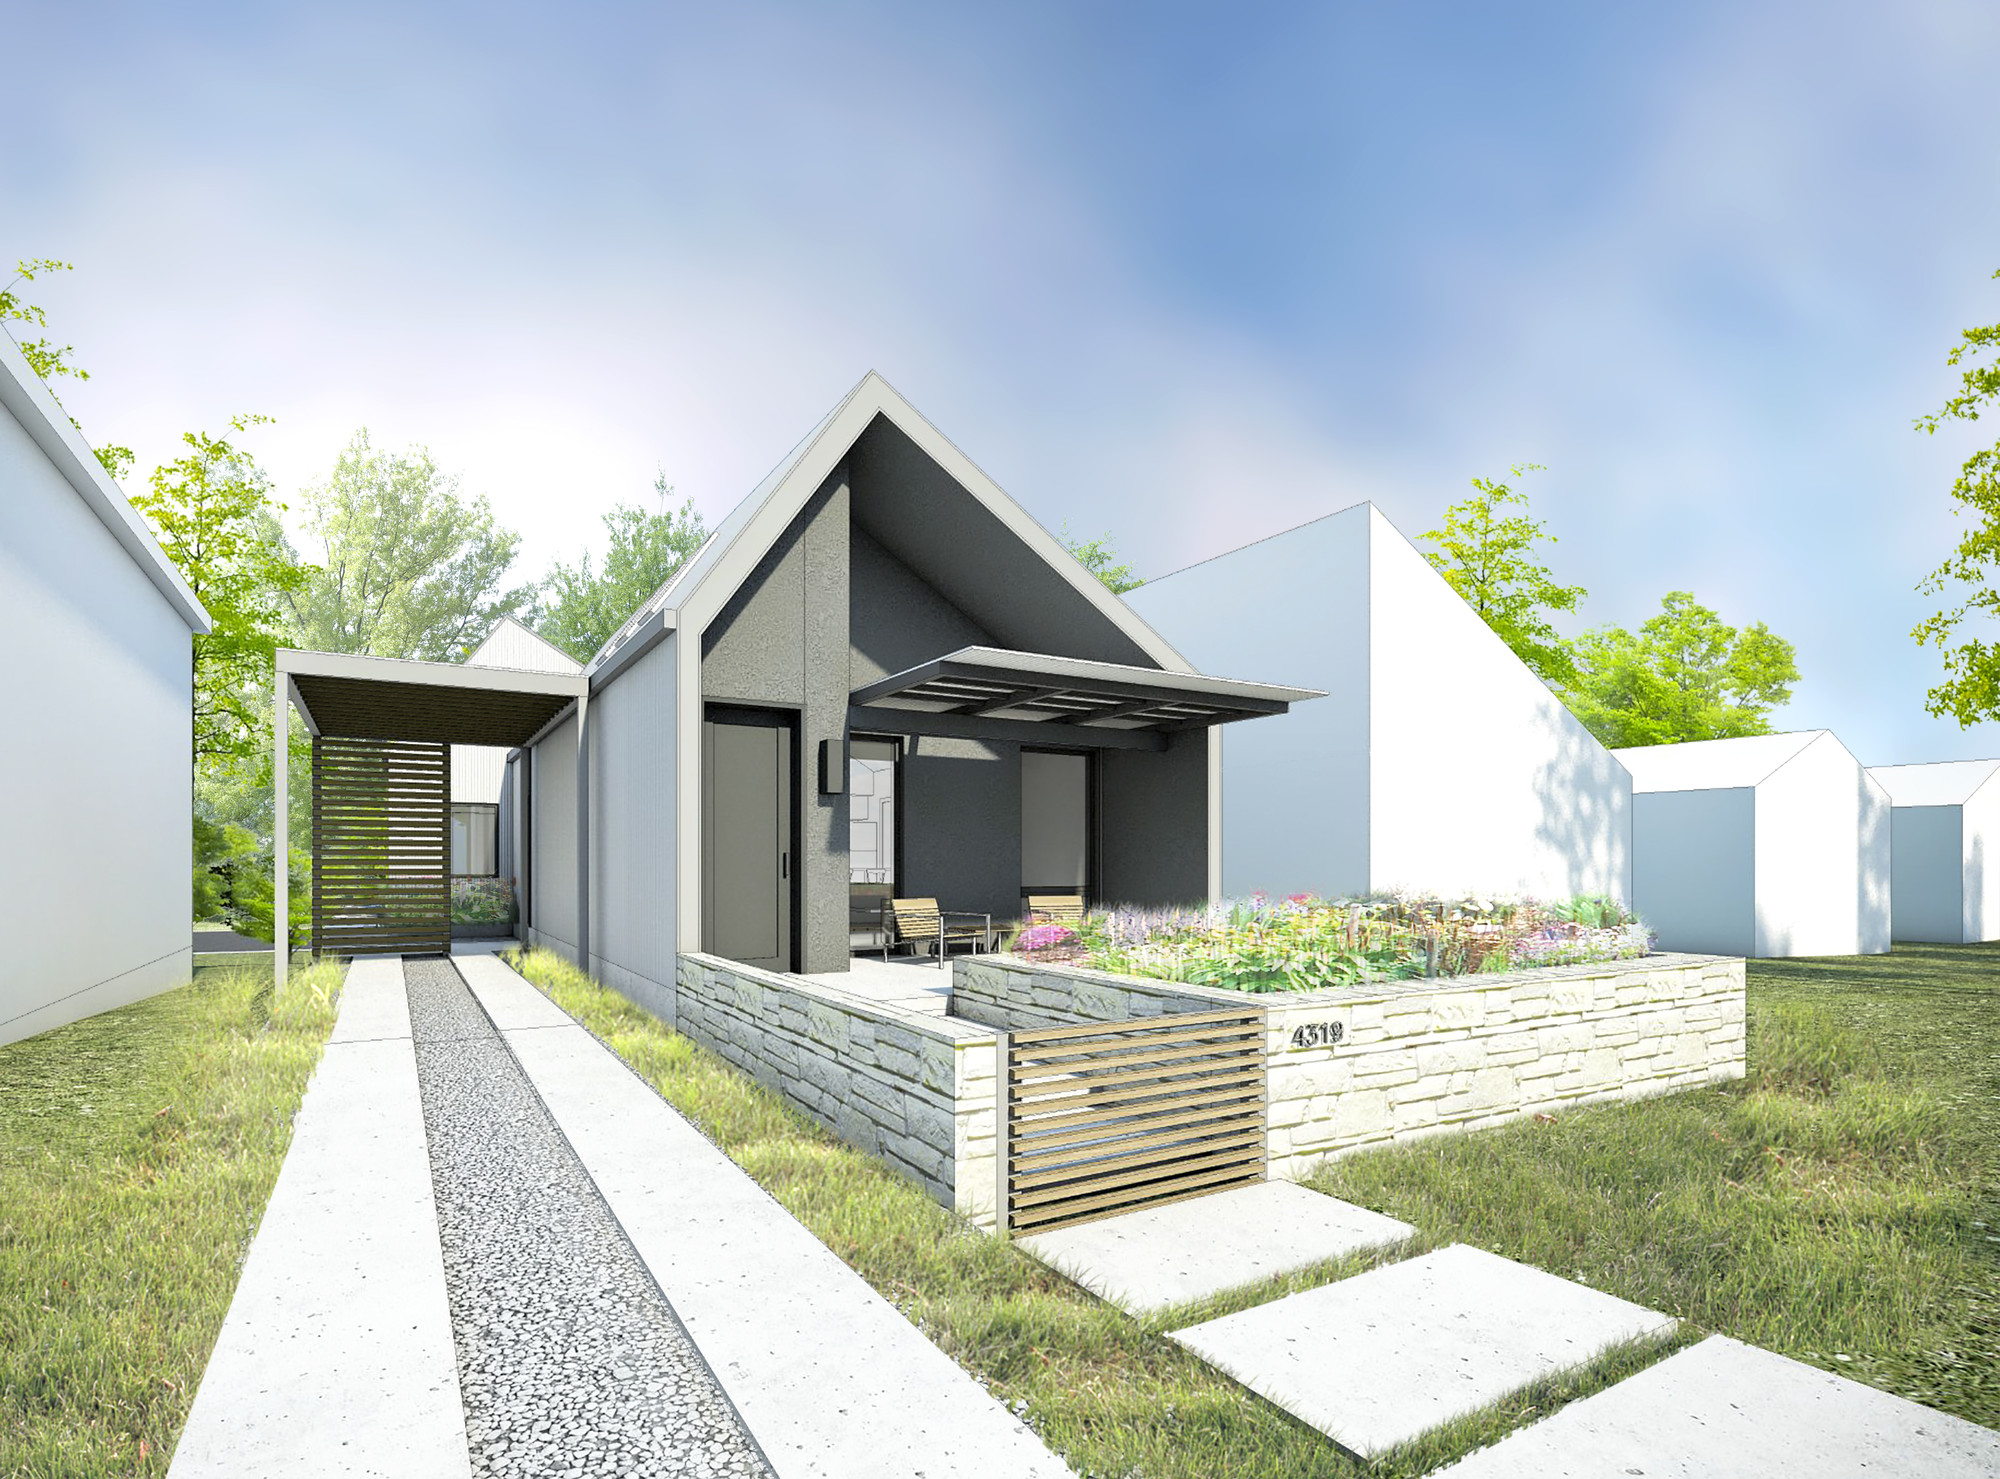 Gallery of Make It Right Releases Six SingleFamily House Designs